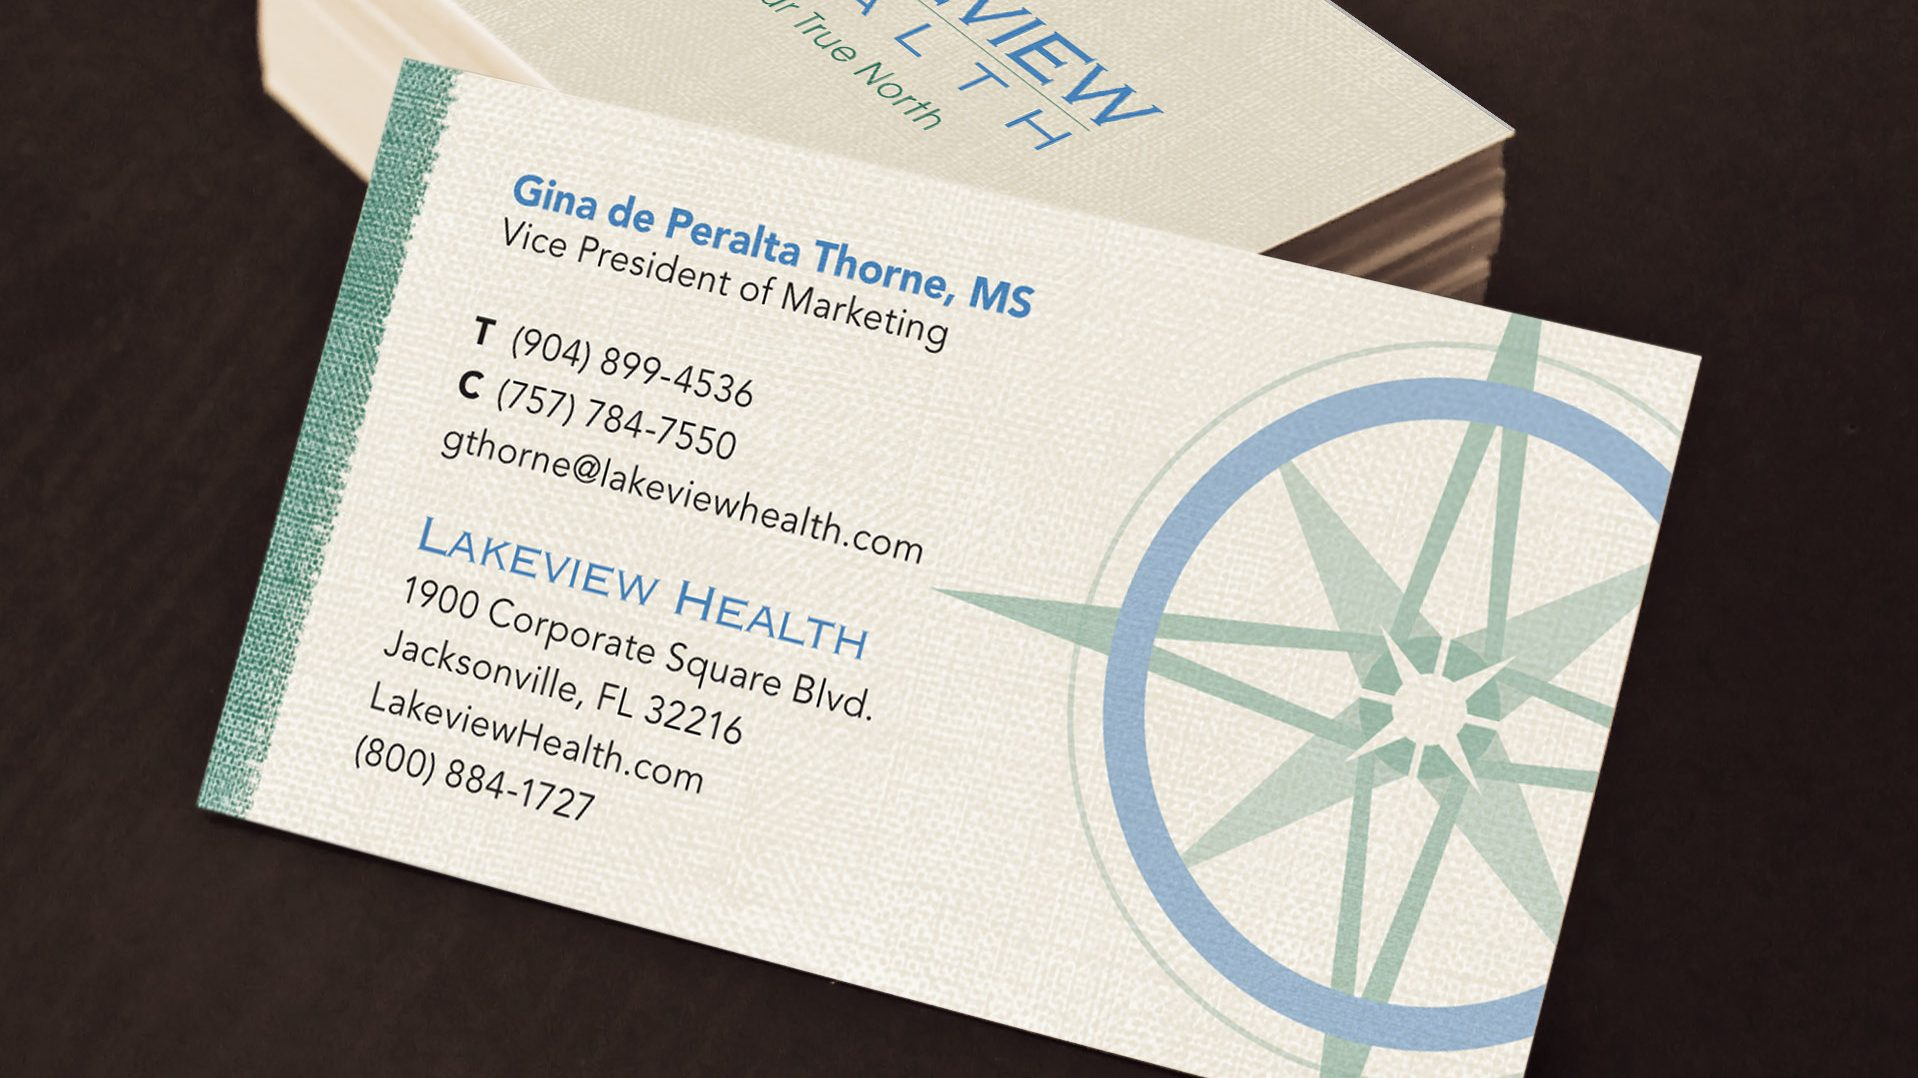 Lakeview Health Corporate ID